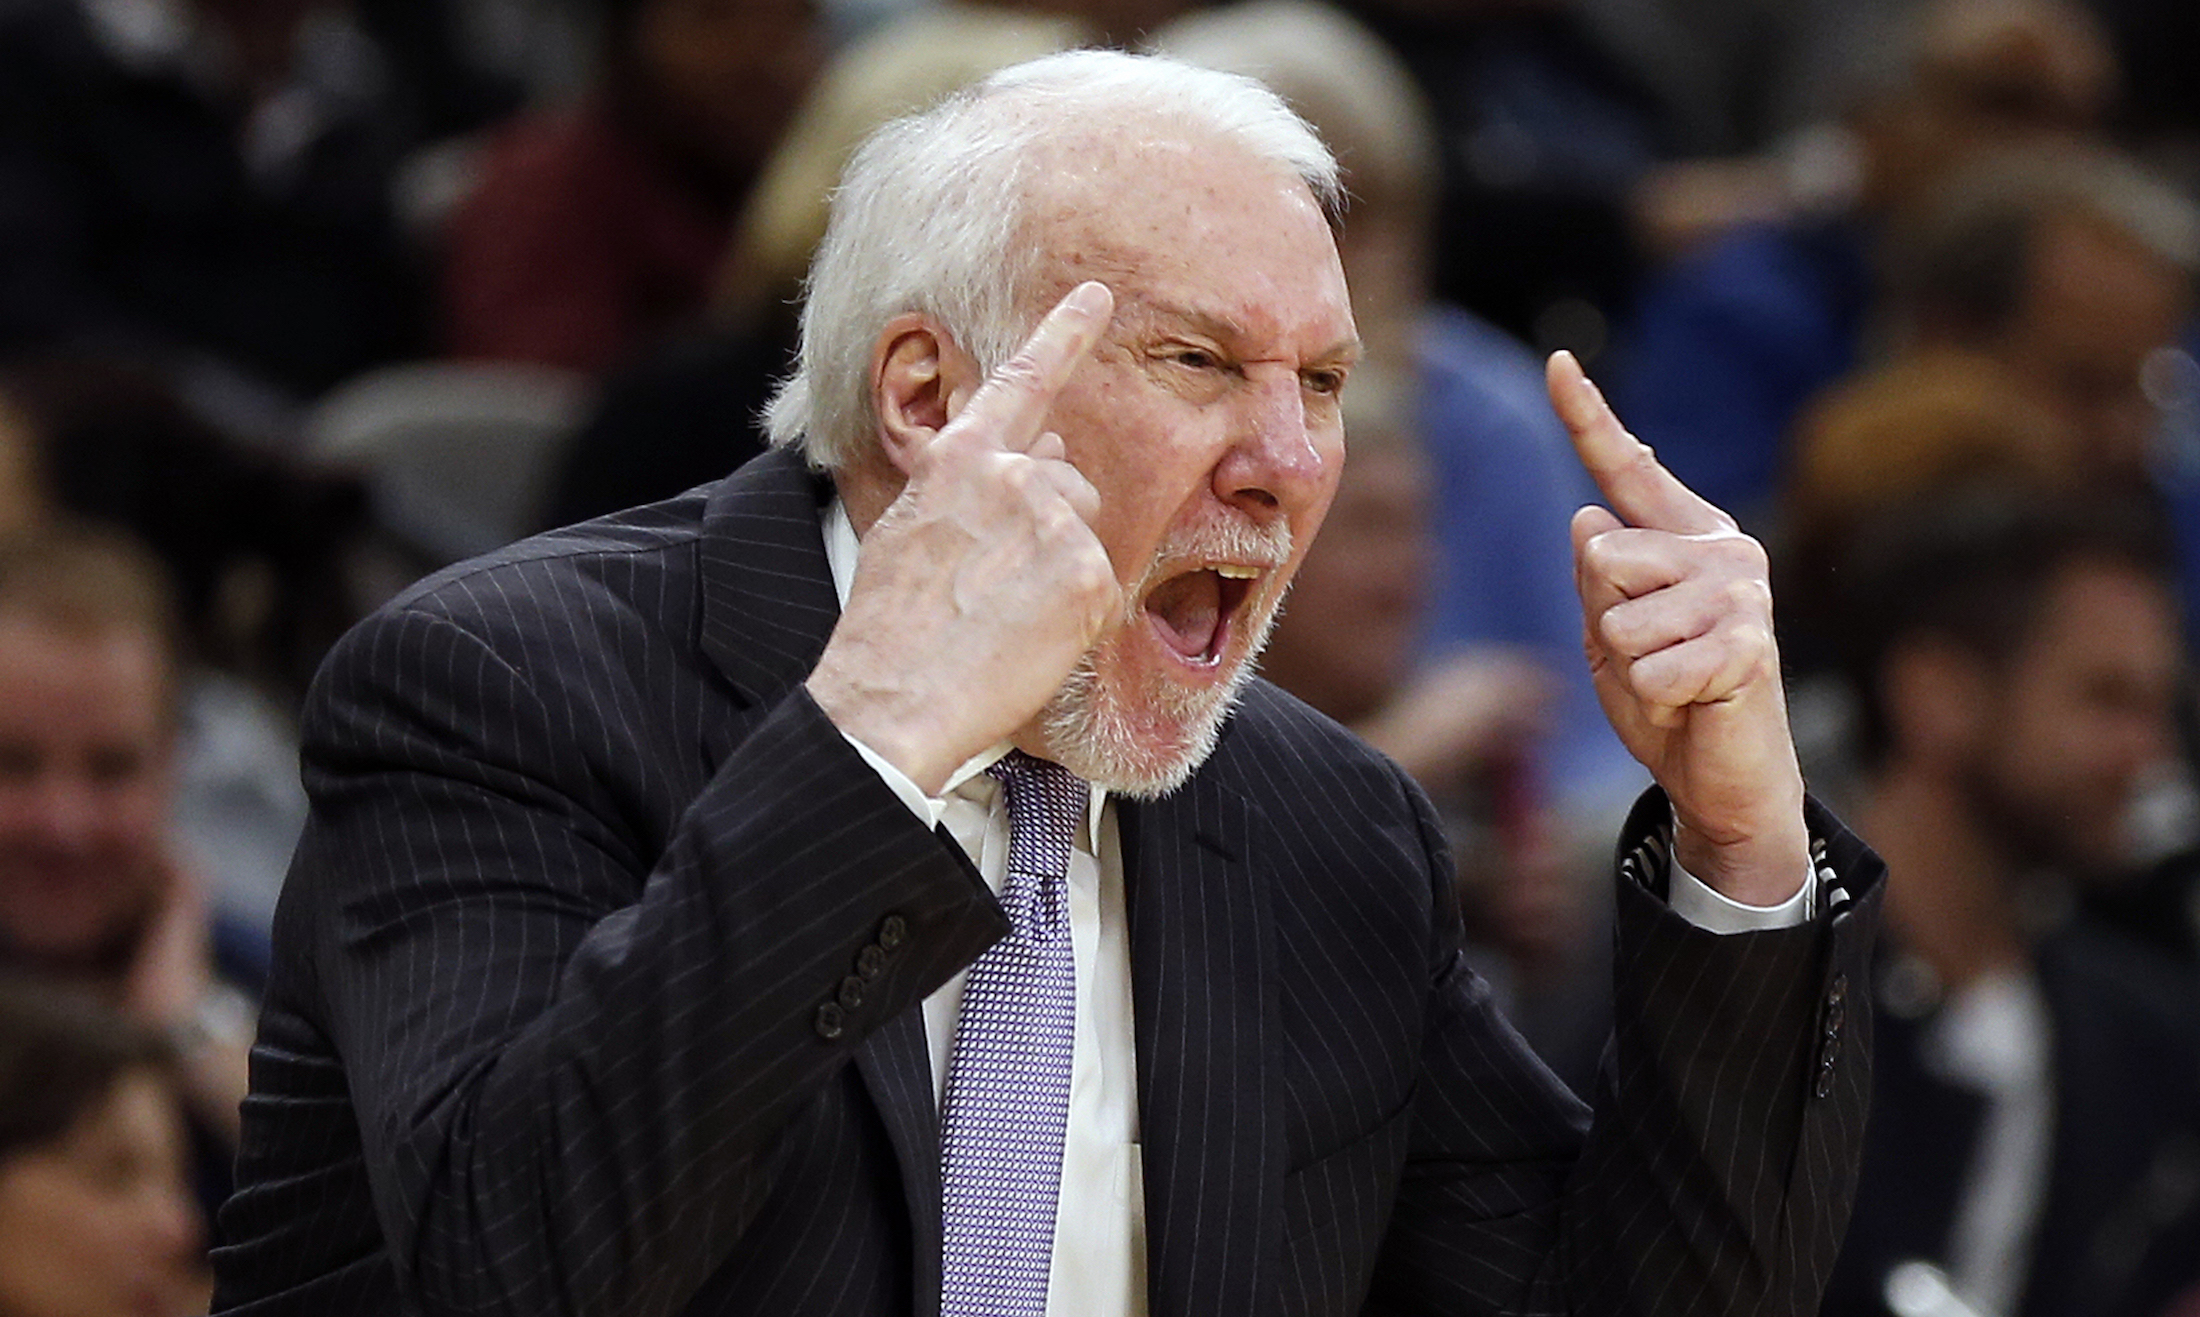 Gregg Popovich isn't afraid to call out Donald Trump of Texas' Republican leadership.